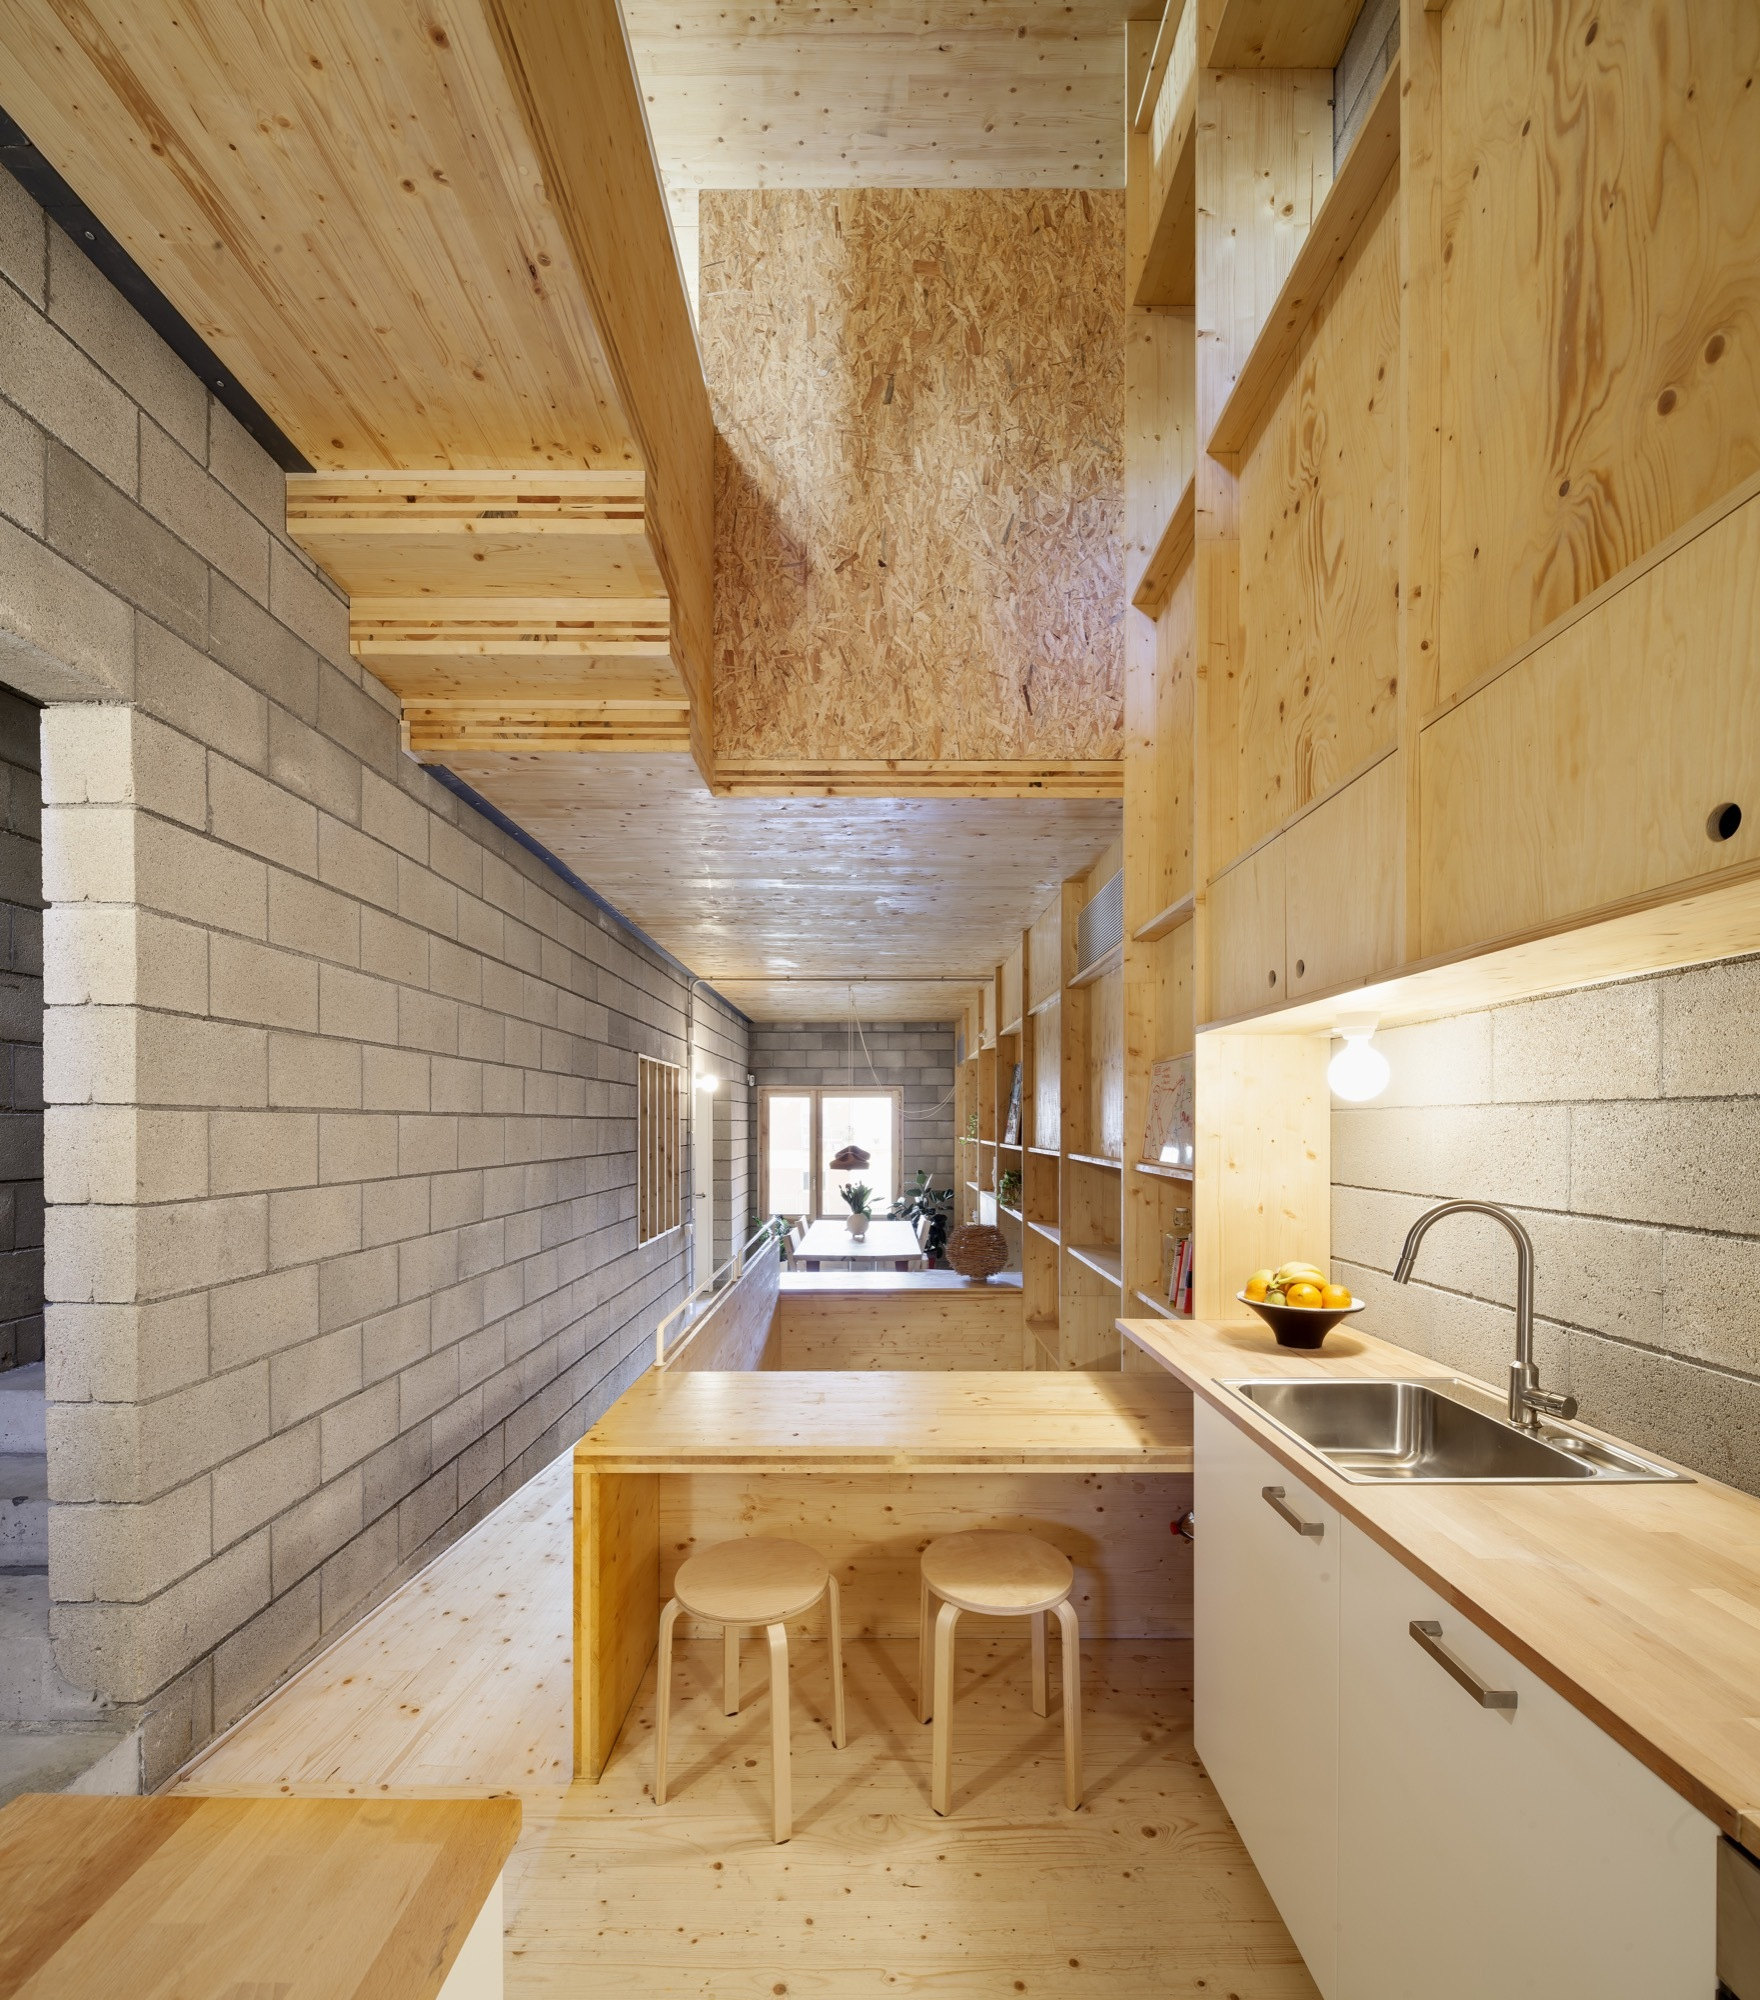 House Between Party Walls Josep Ferrando Archdaily